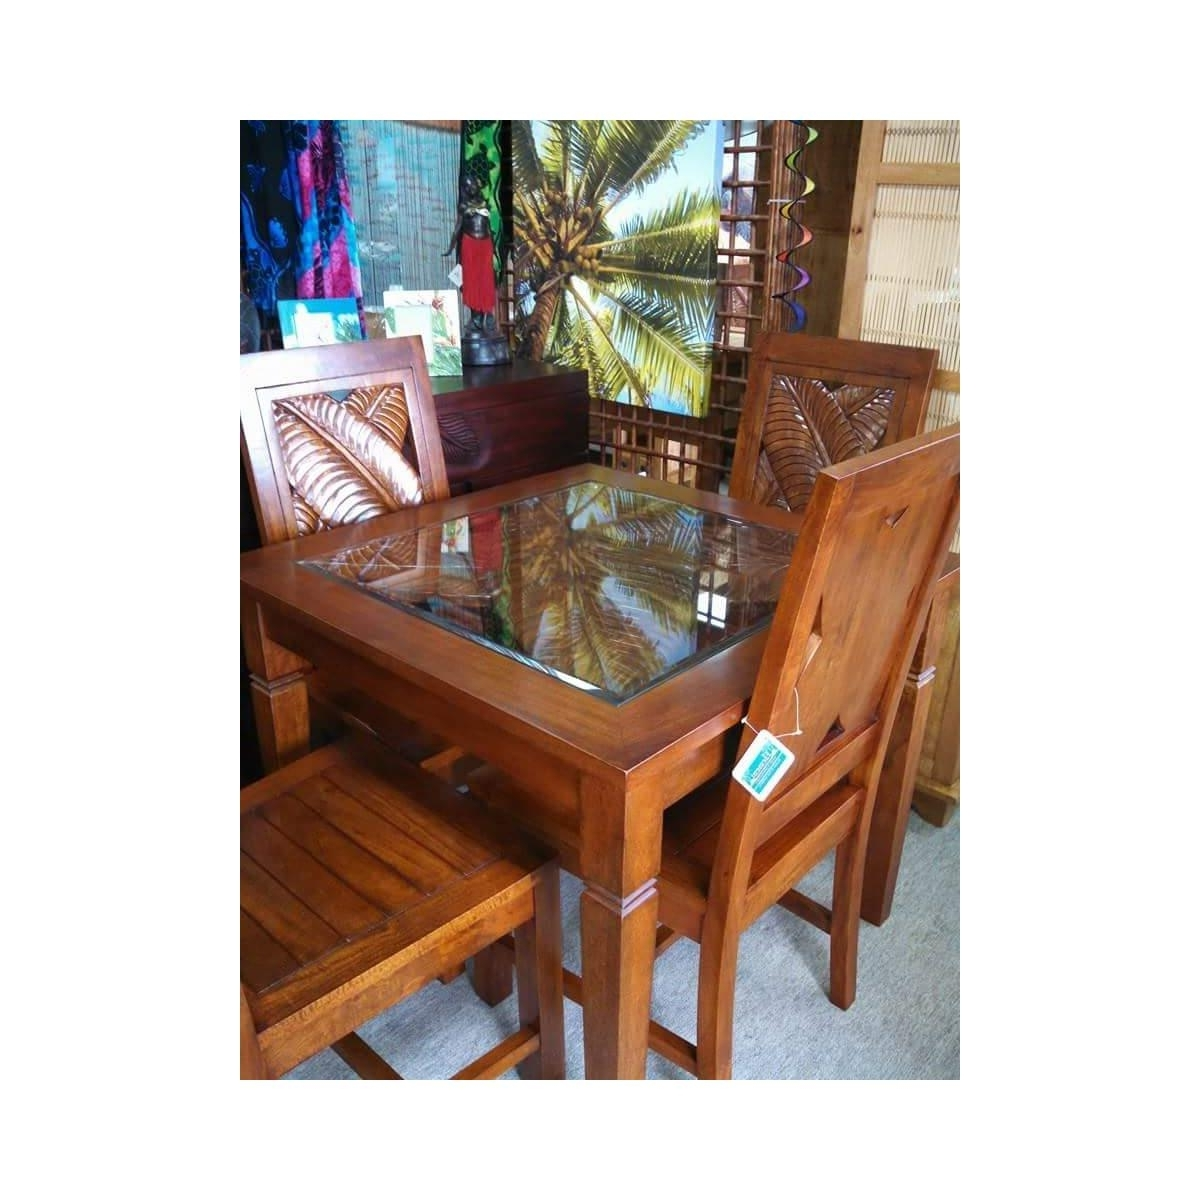 Balinese Dining Tables In Latest Bali Carved Dining Table At Elementfinefurniture Hand Made Solid (Gallery 4 of 25)